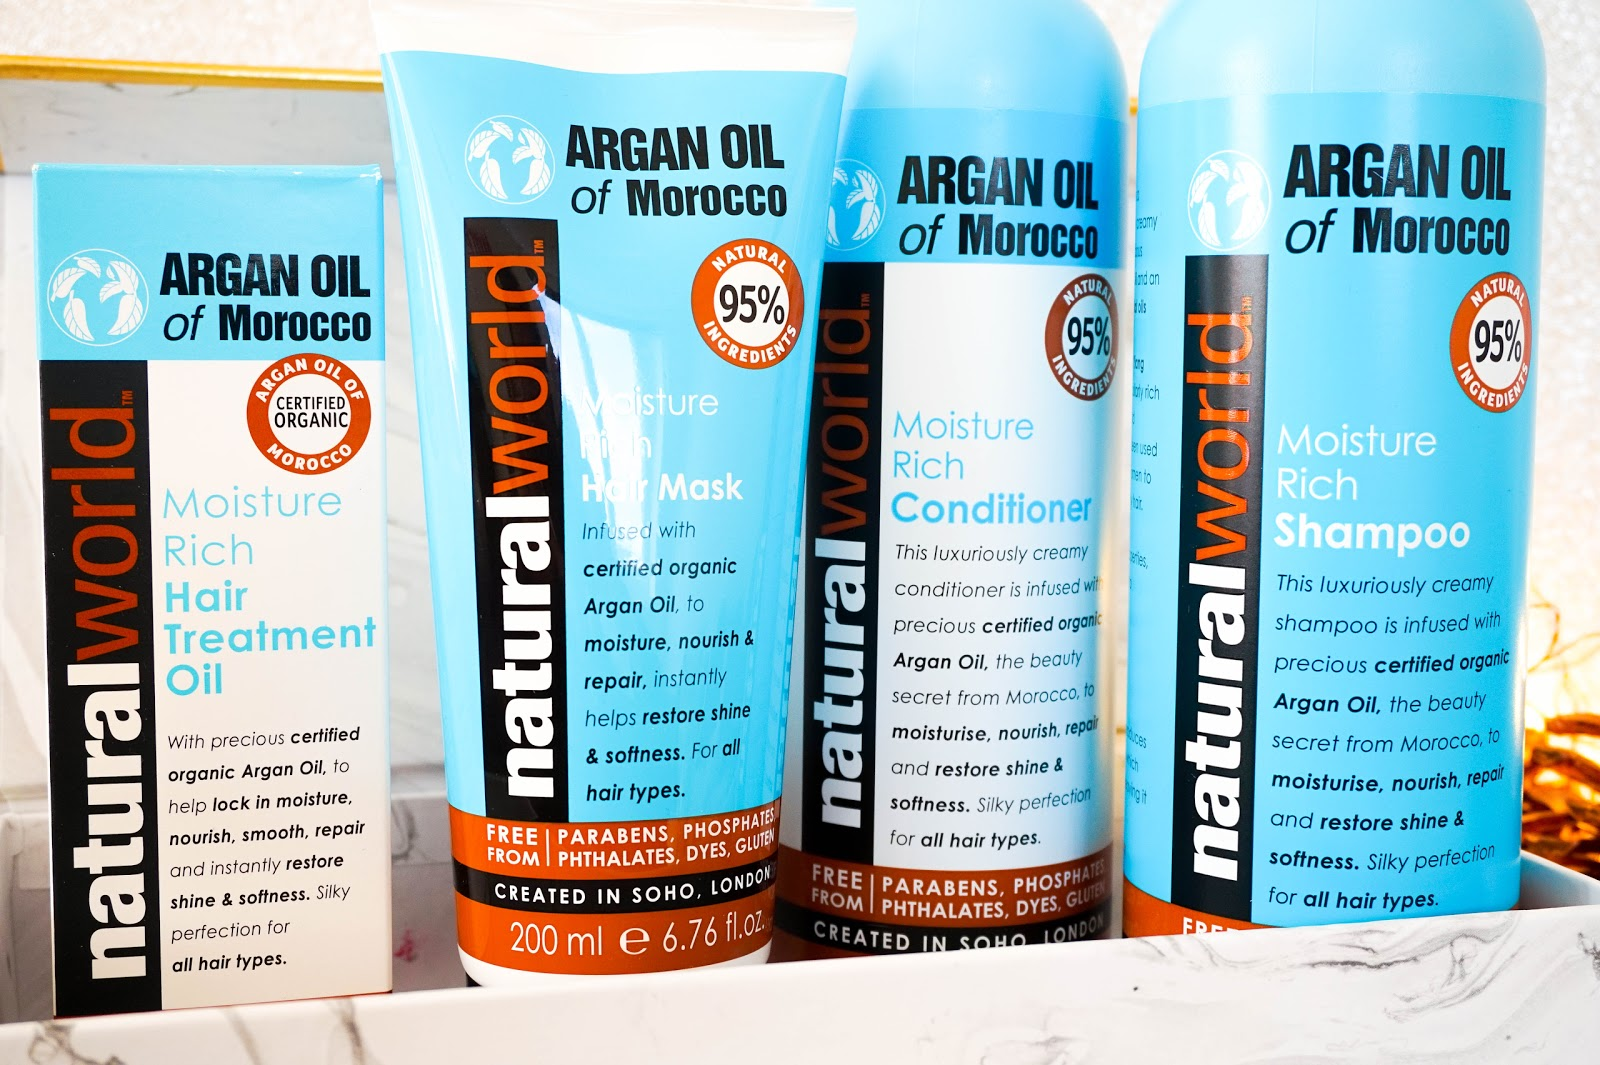 Natural World Argan Oil of Morocco